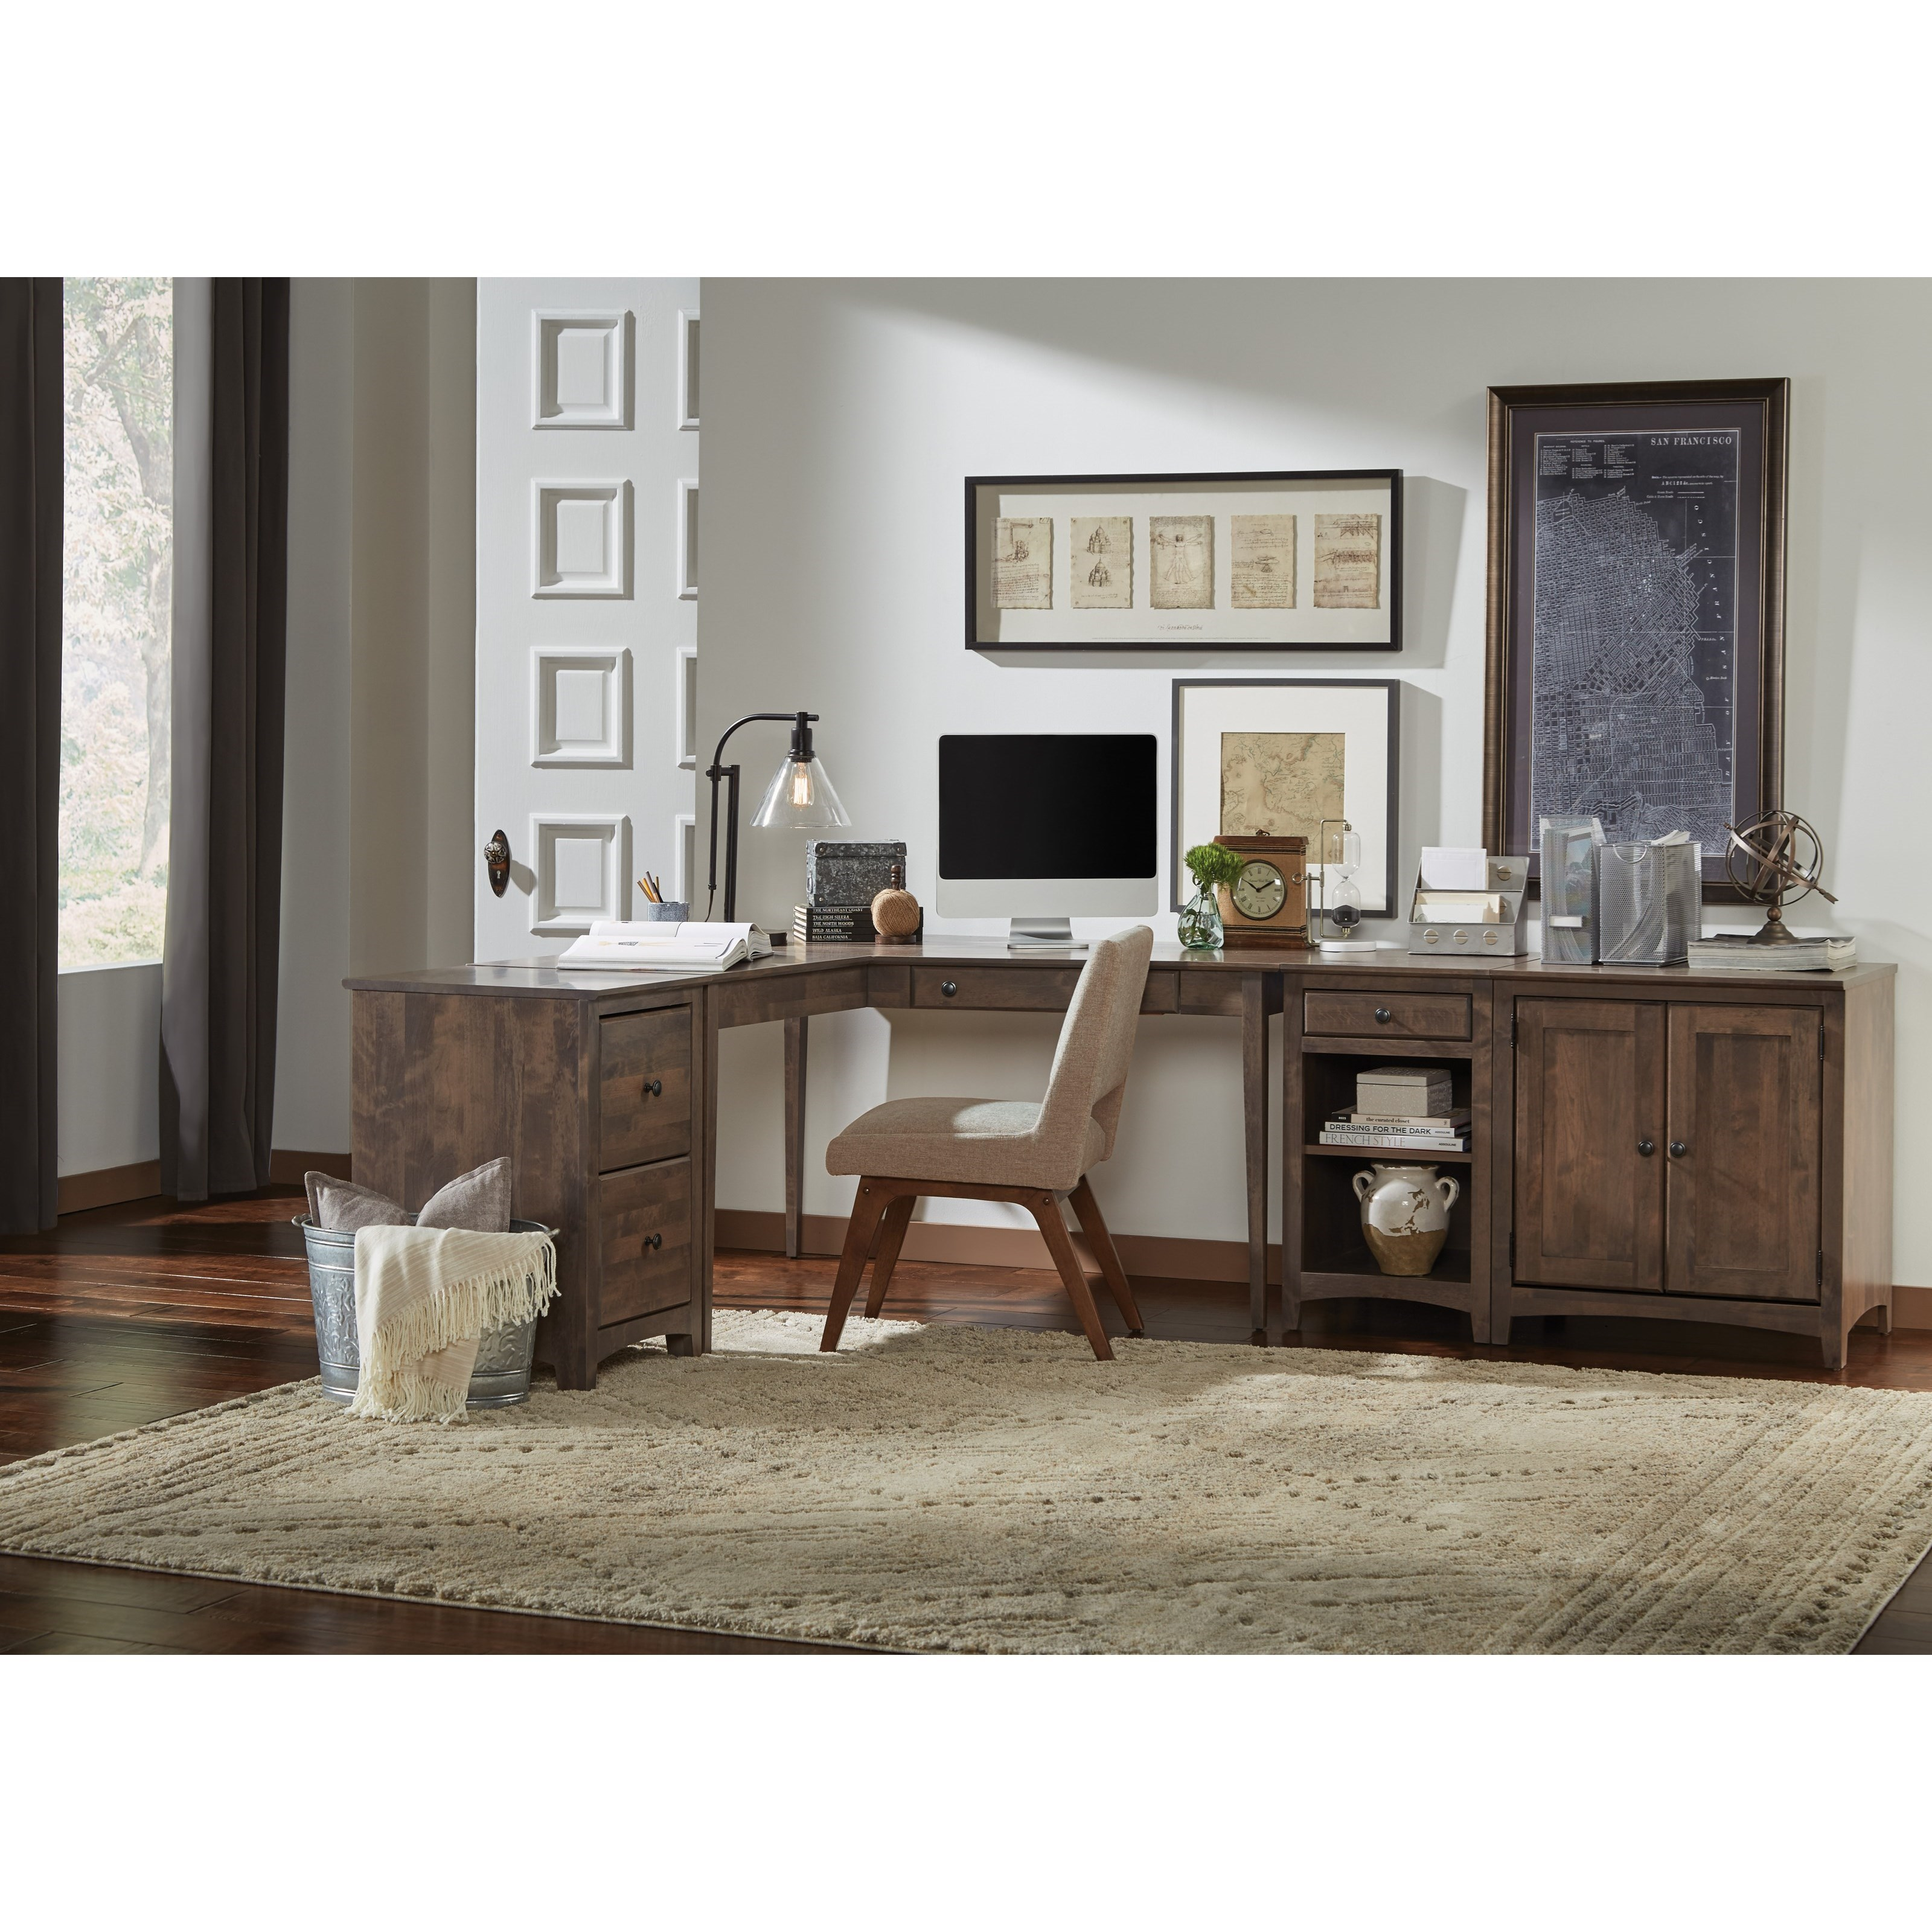 Modular Home Office Modular Home Office Group by Vendor 980 at Becker Furniture